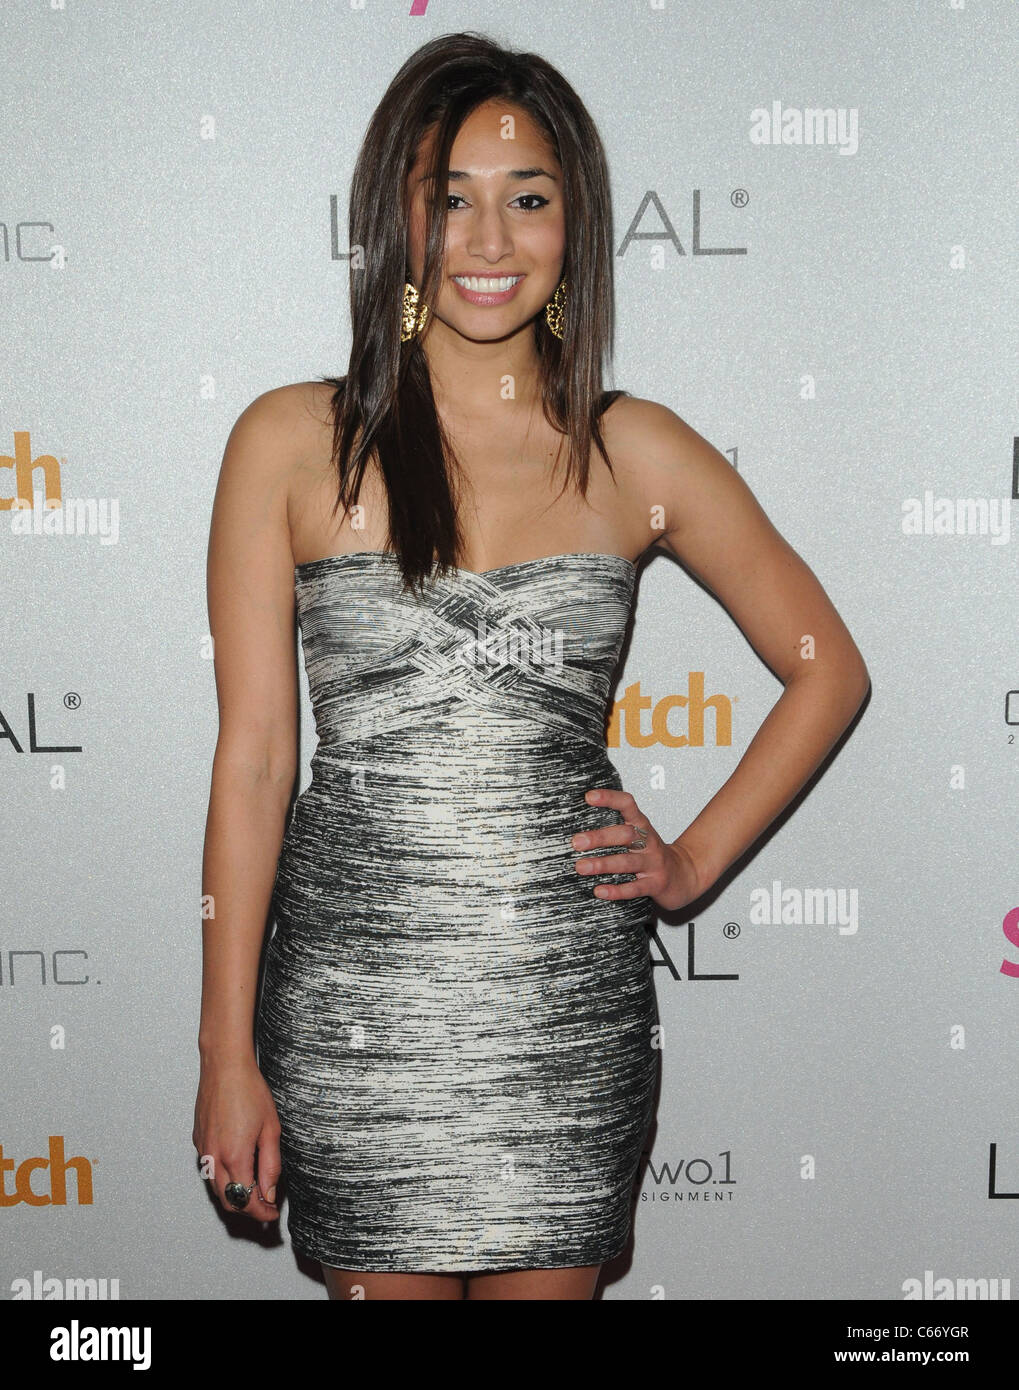 Meaghan Rath Stock Photos Amp Meaghan Rath Stock Images Alamy